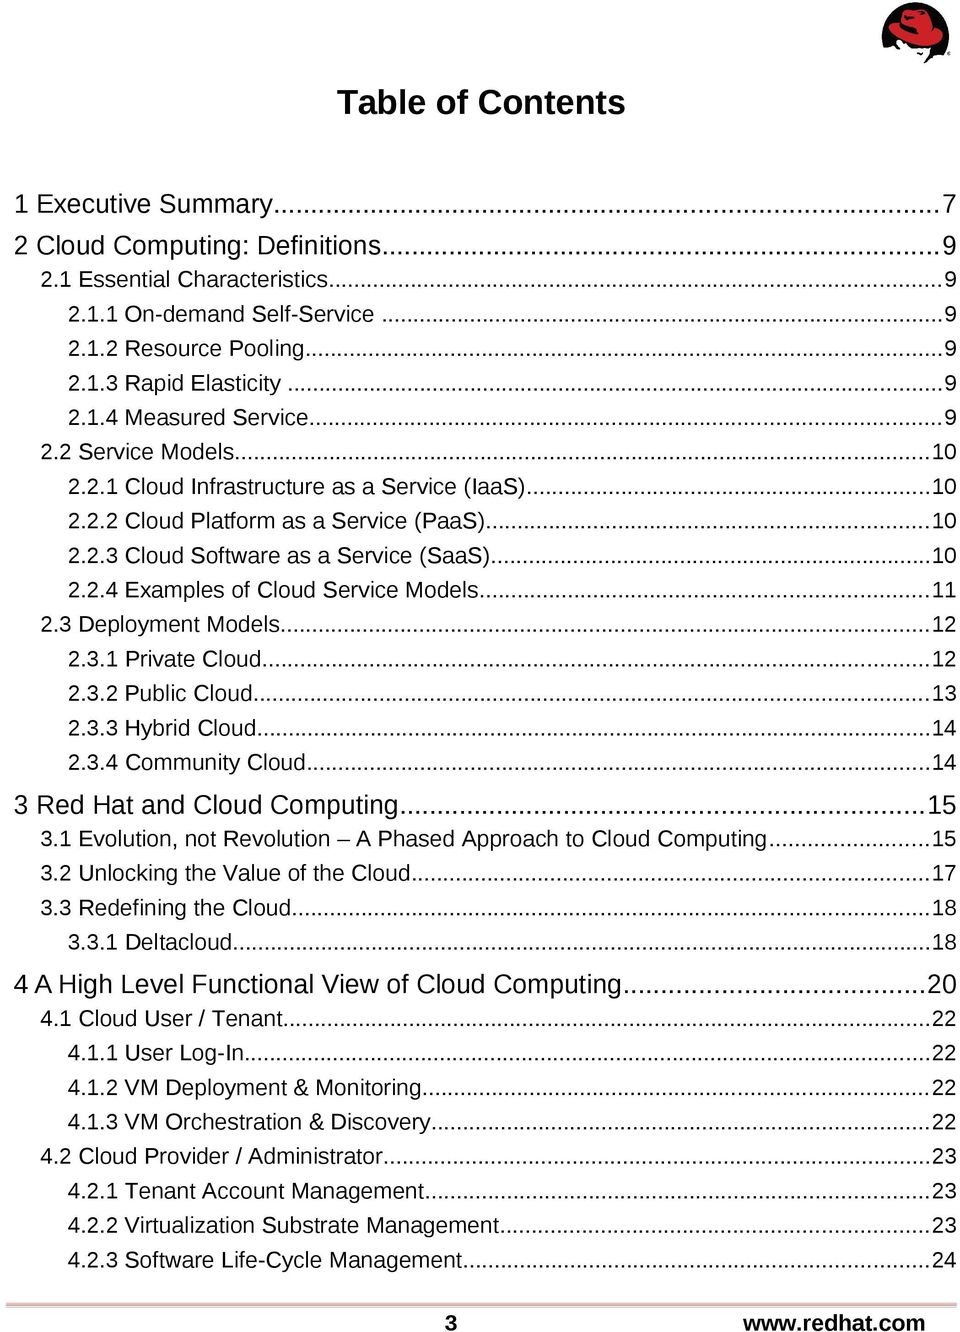 ..11 2.3 Deployment Models...12 2.3.1 Private Cloud...12 2.3.2 Public Cloud...13 2.3.3 Hybrid Cloud...14 2.3.4 Community Cloud...14 3 Red Hat and Cloud Computing...15 3.